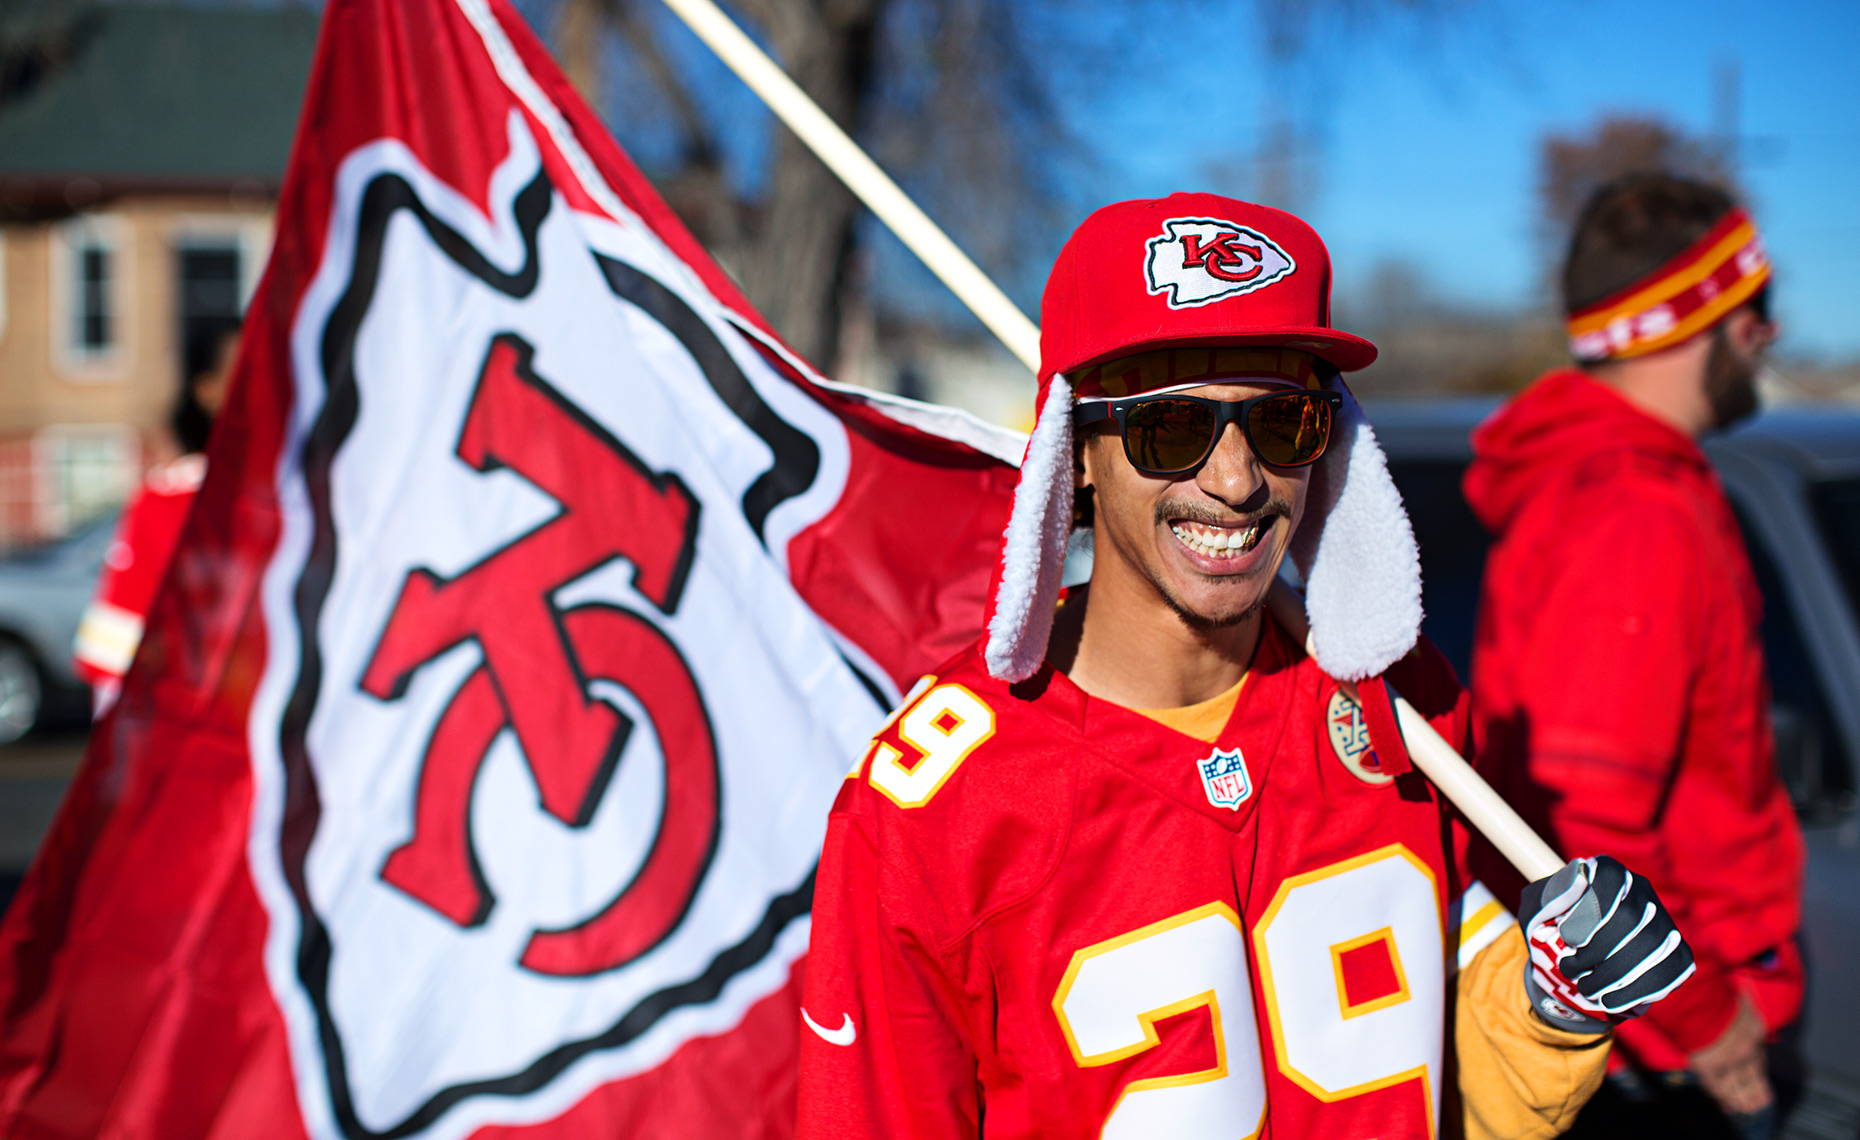 Philadelphia Photographer STEVE BOYLE - Kansas City Chiefs Fans - NFL Football